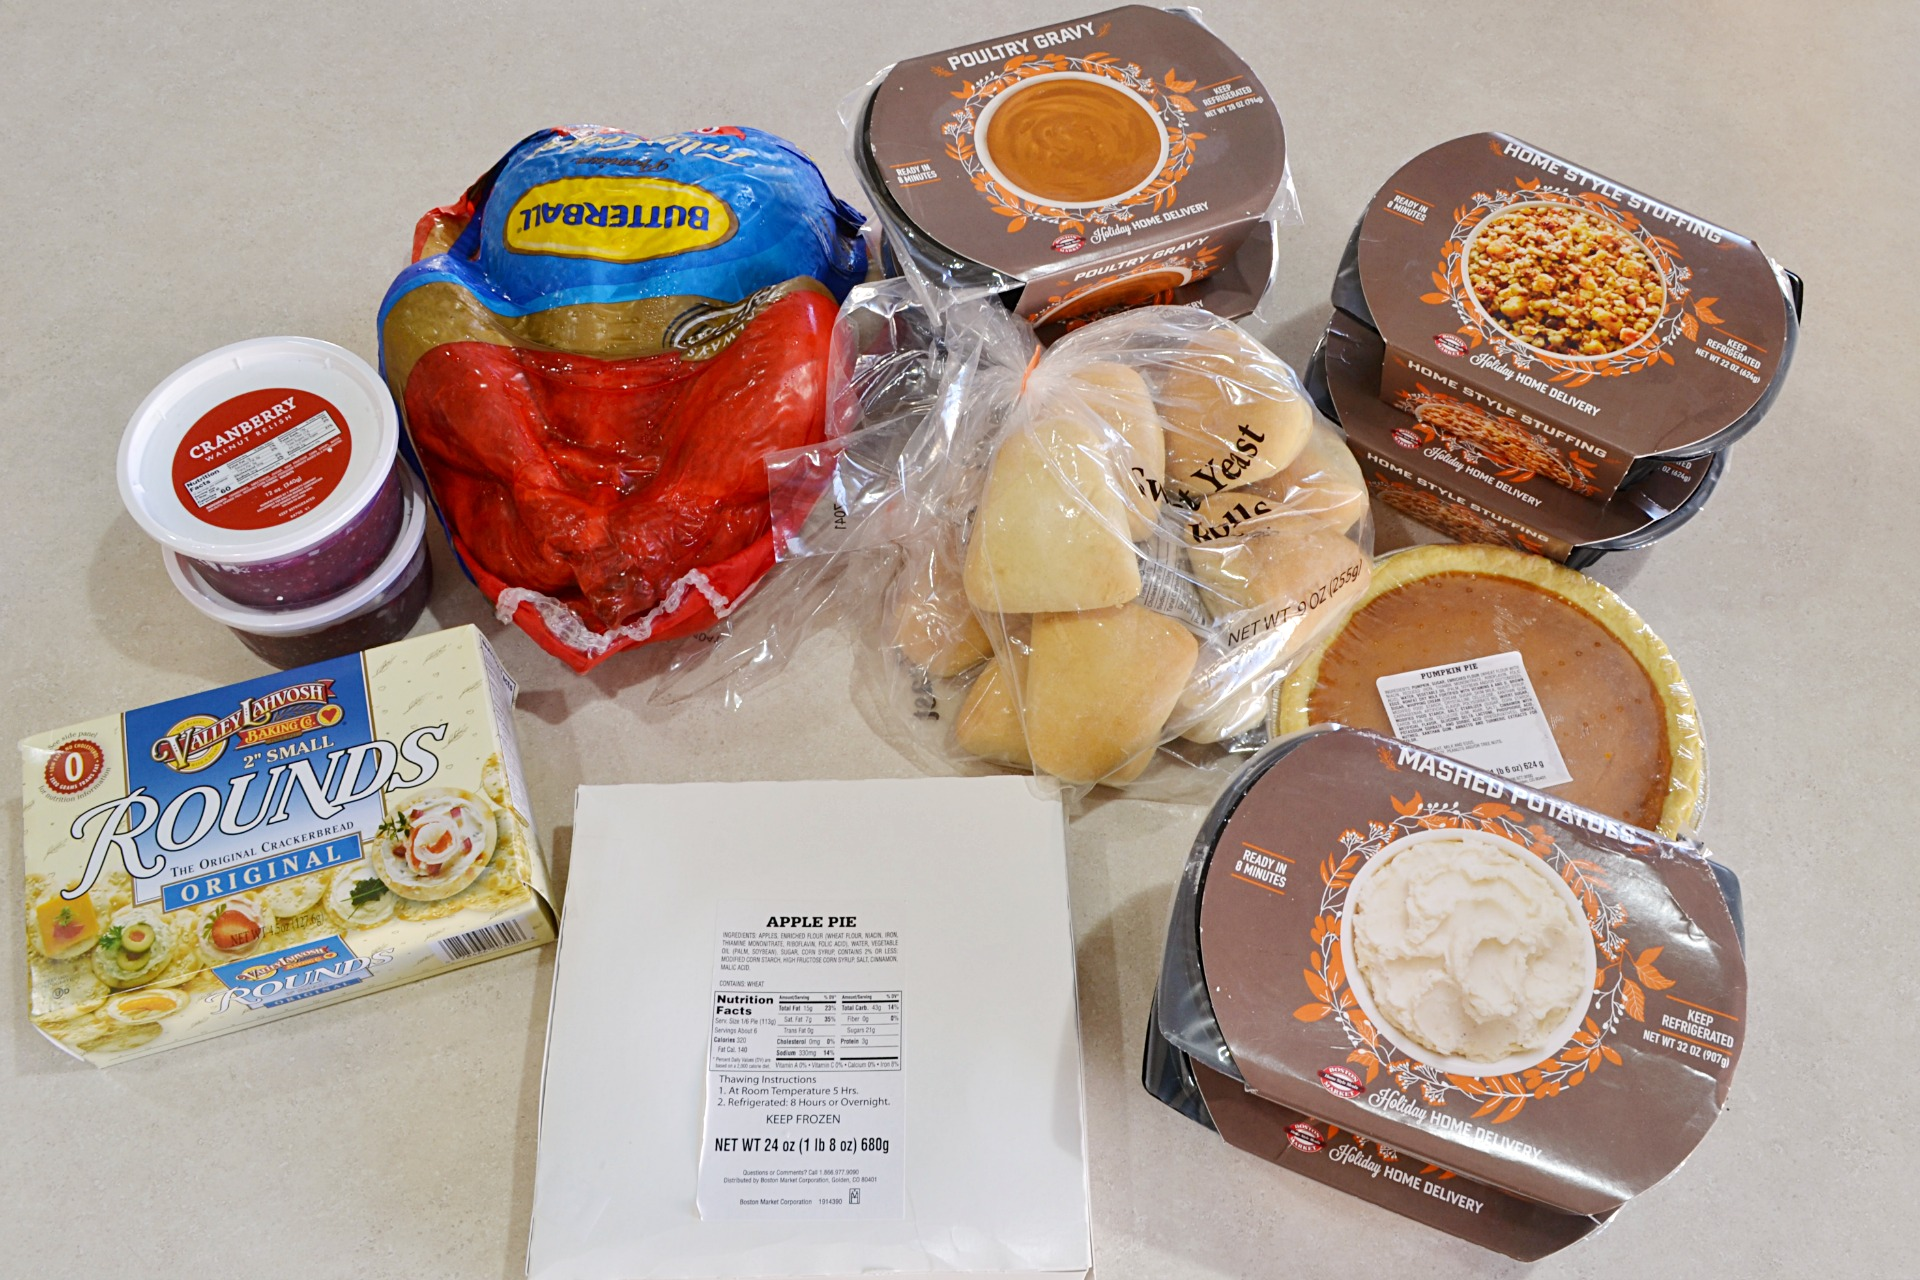 You can also send a meal to friends and family through the Boston Market  Thanksgiving Home Delivery program.